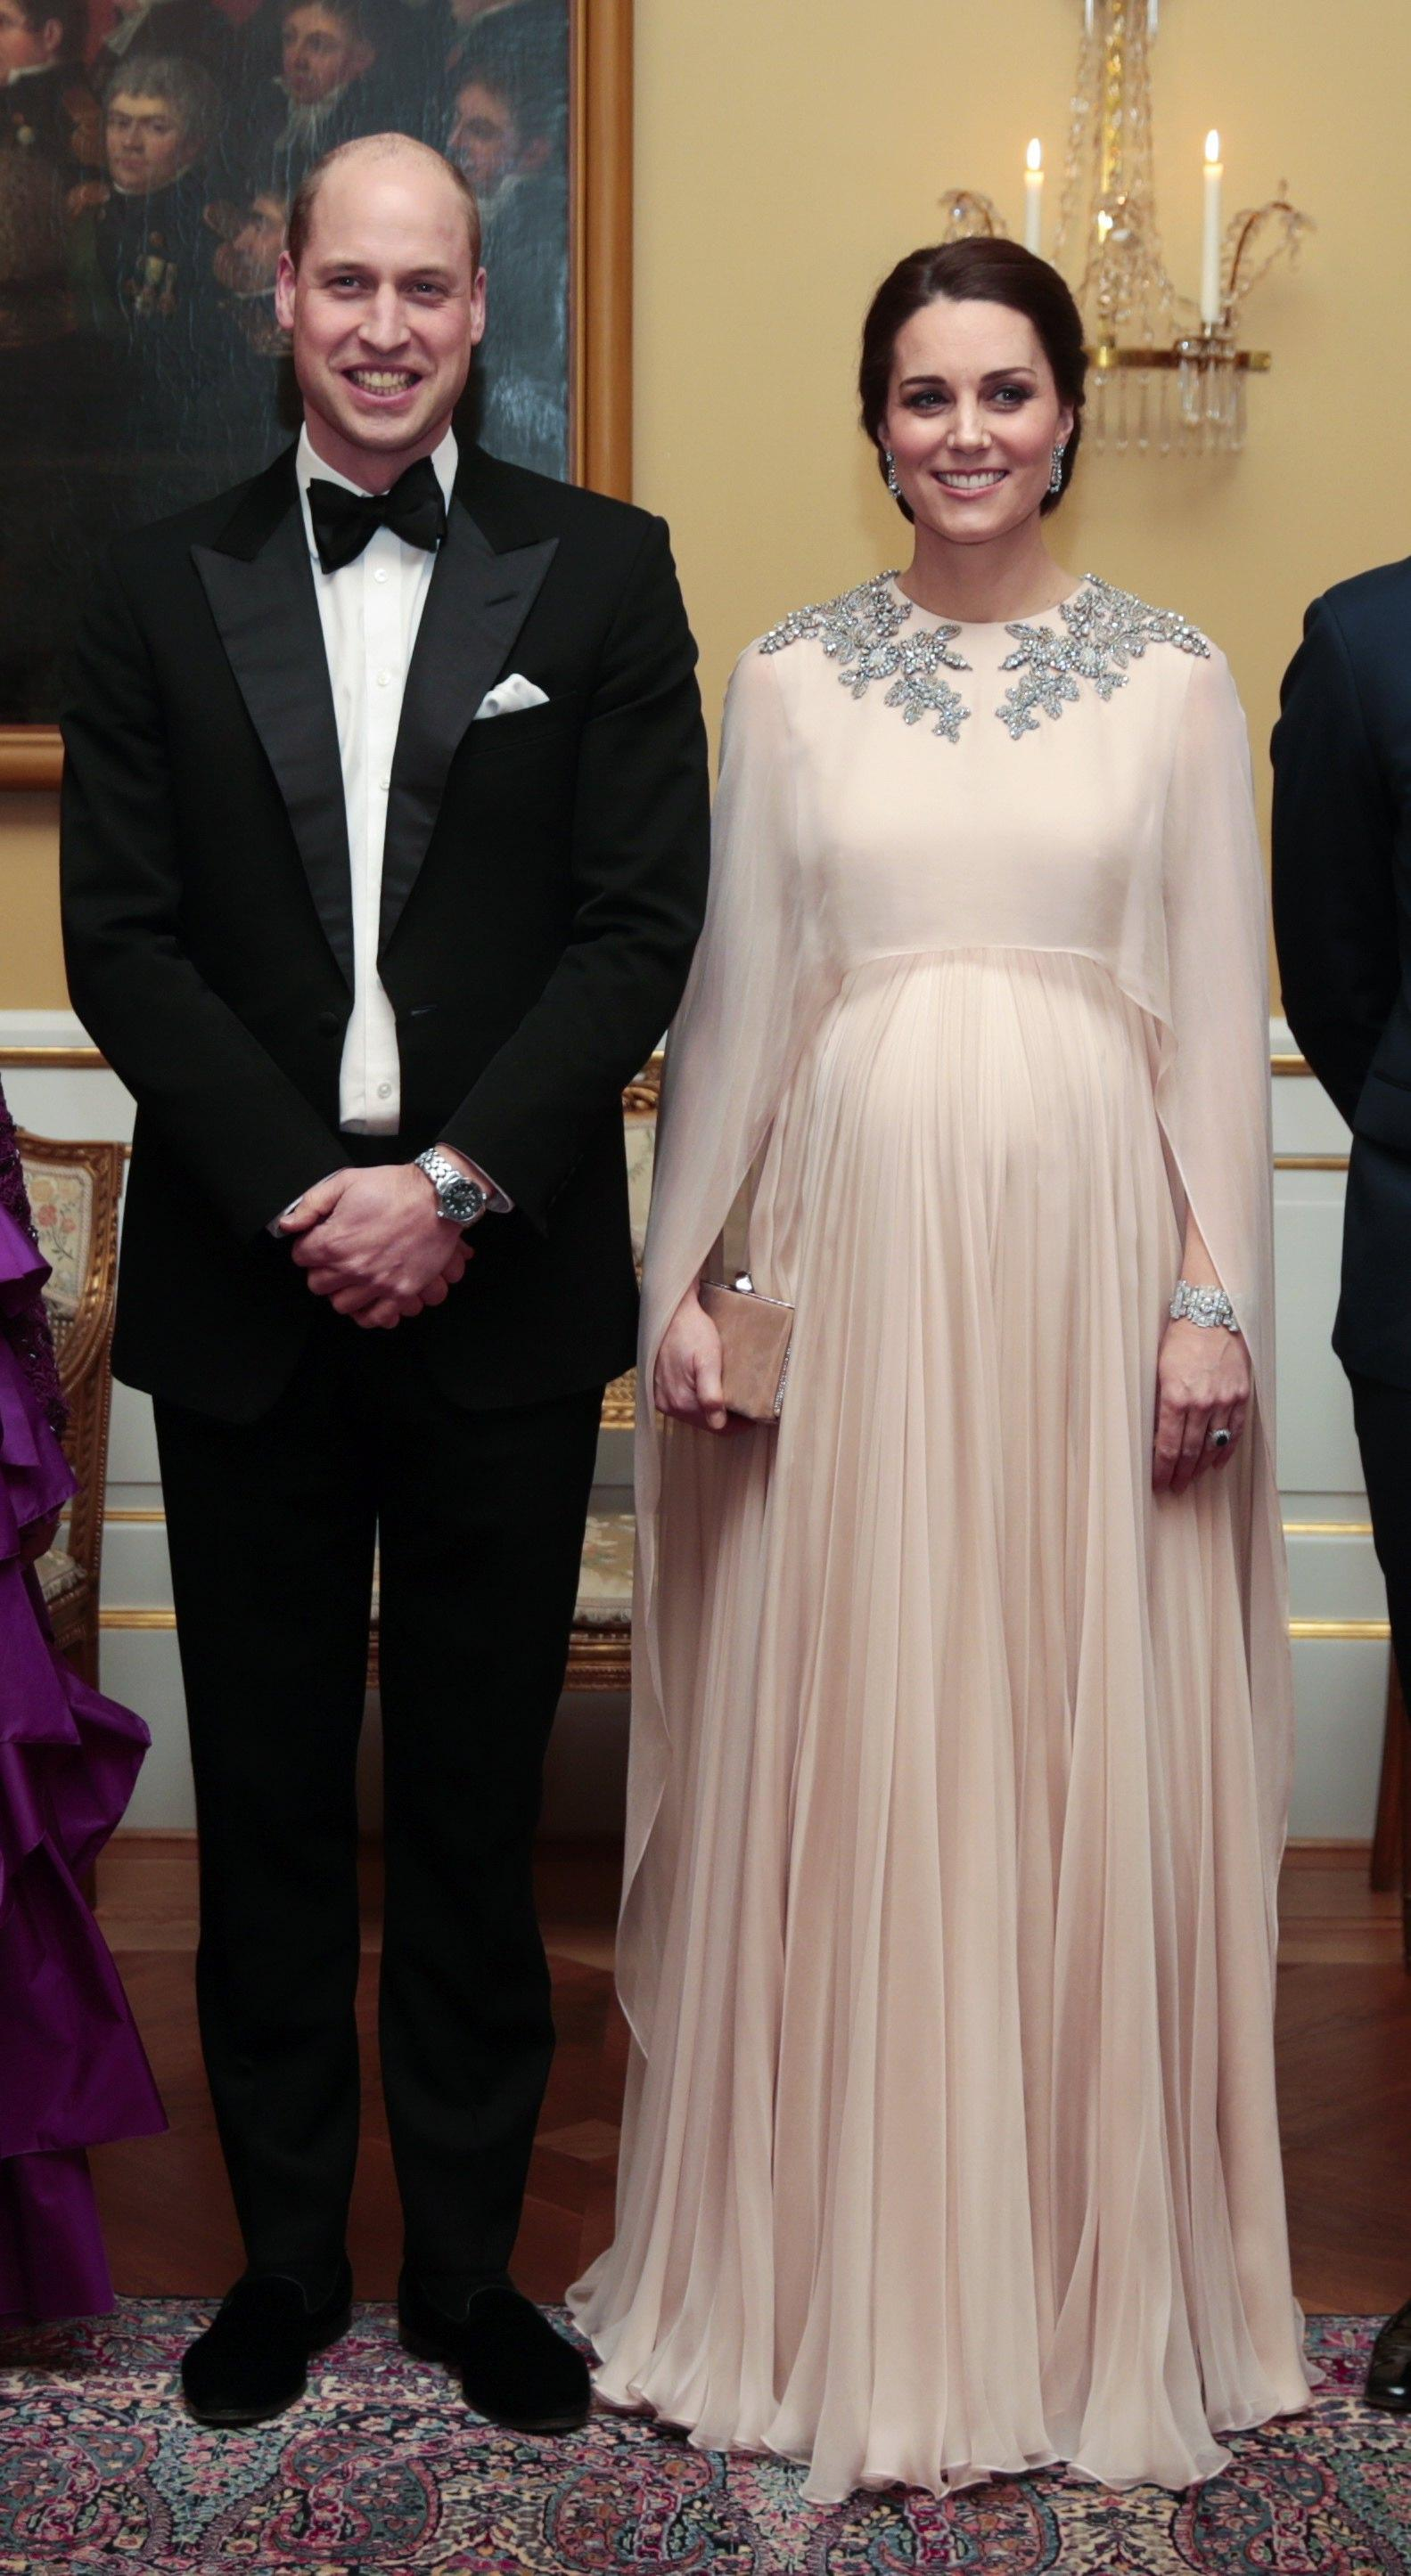 Duke and Duchess of Cambridge visit Norway